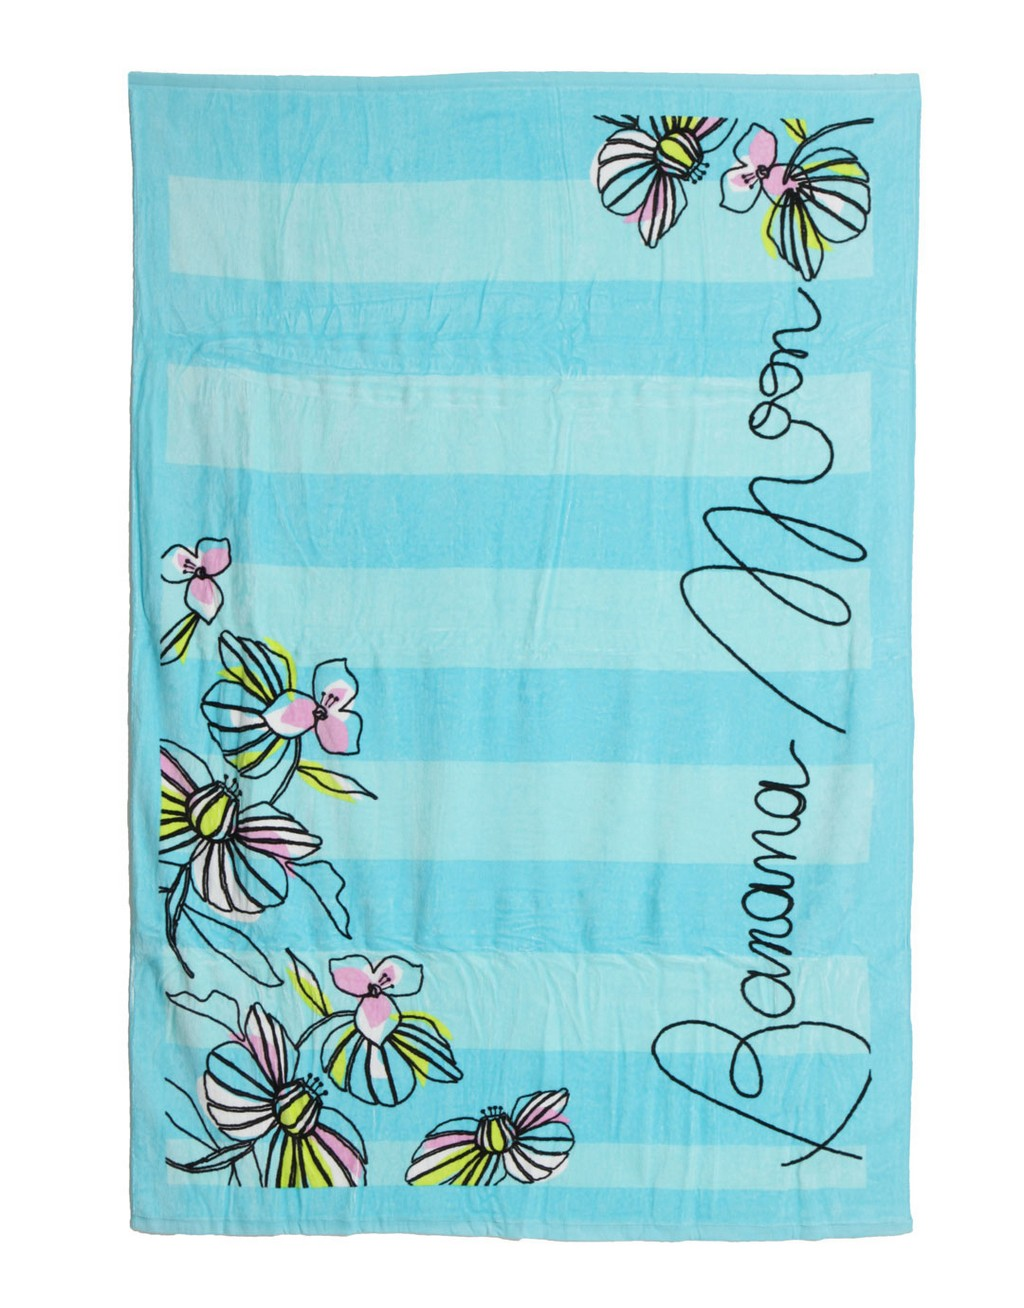 fieldcrest towels, wholesale inexpensive bath towels, white bath towels, turquoise towels